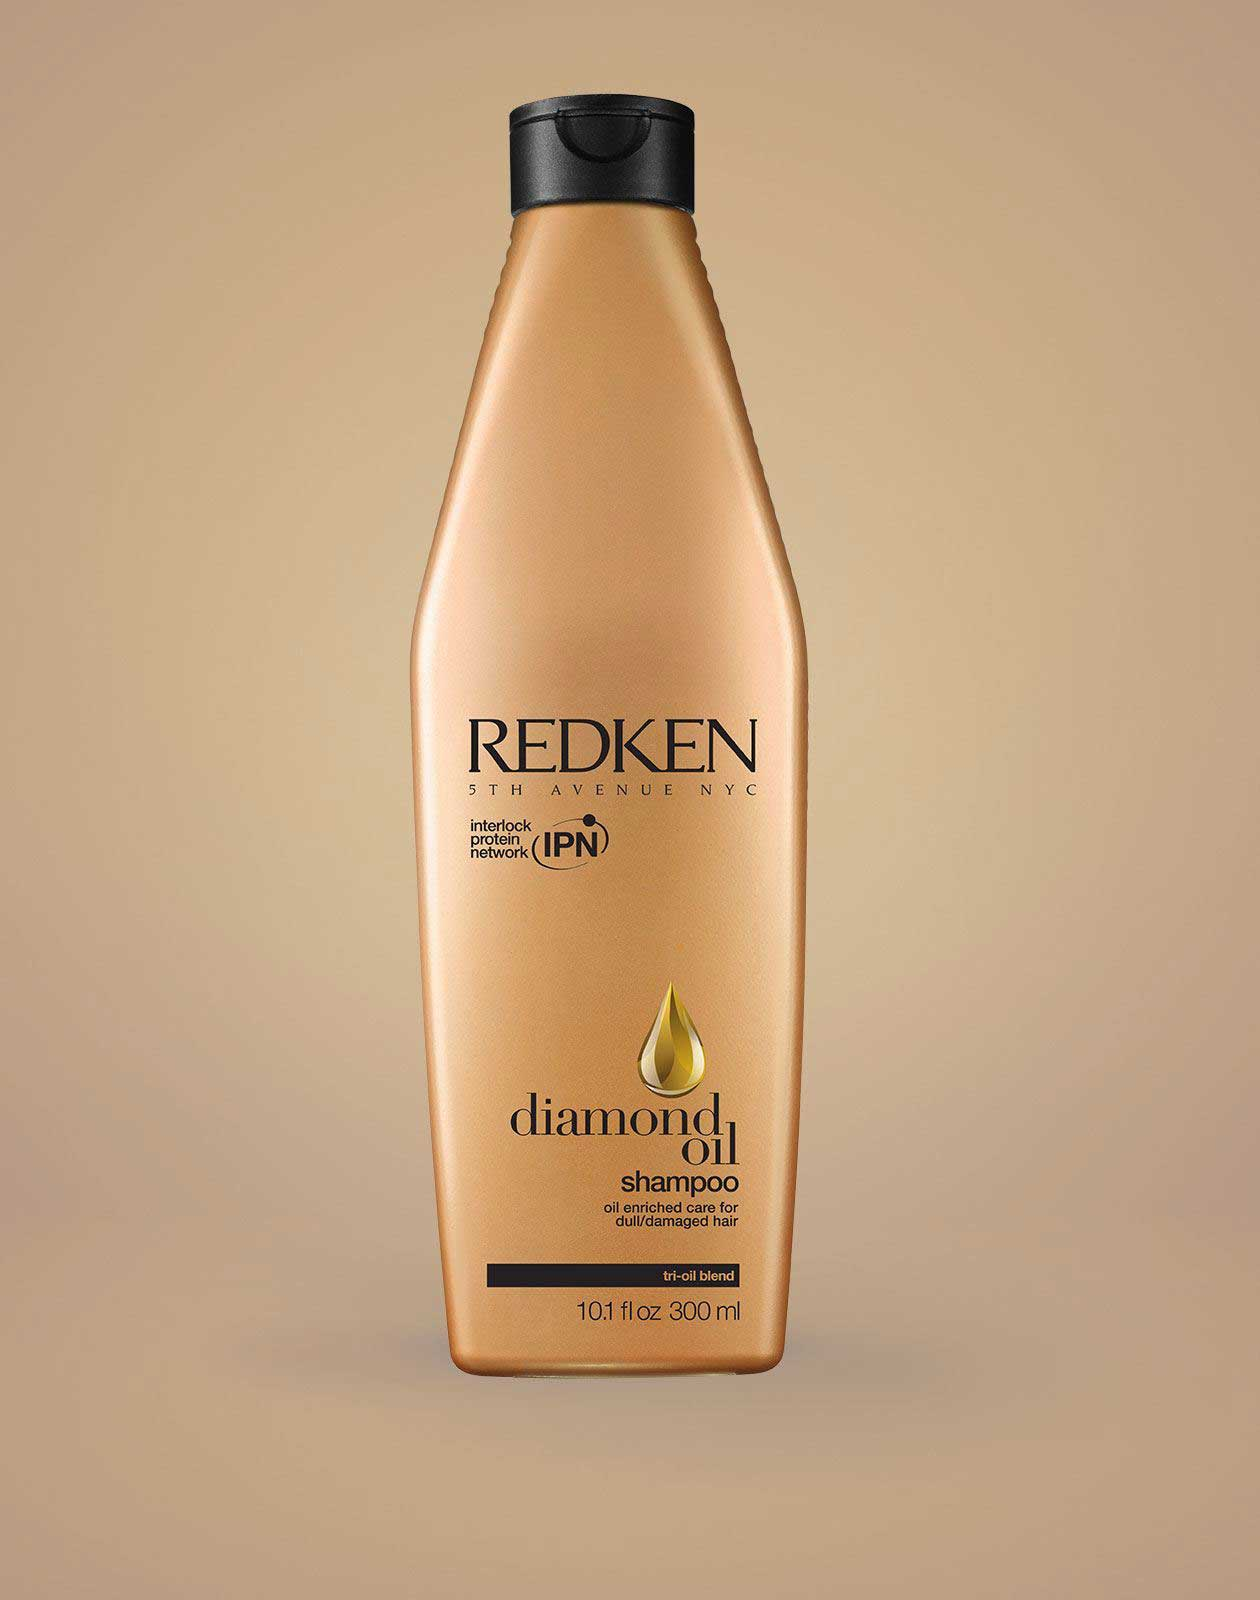 Hair Oil Shampoo To Repair Damaged Hair Redken Diamond